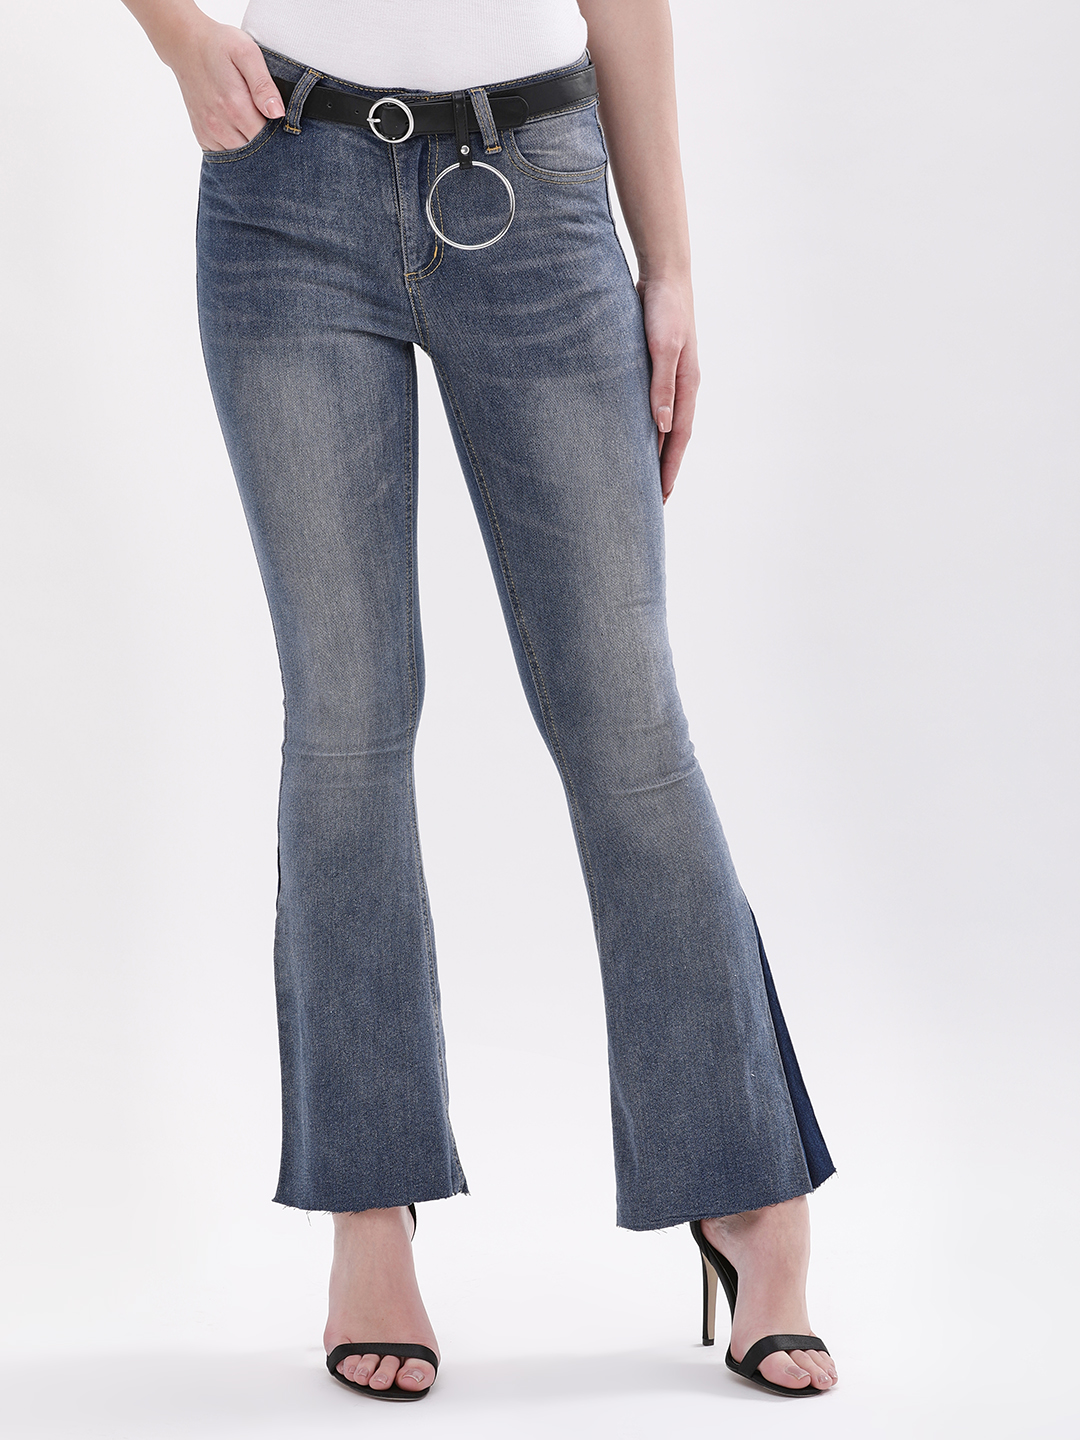 Daisy Street Denim Flared Jeans With D-Ring Detail 1